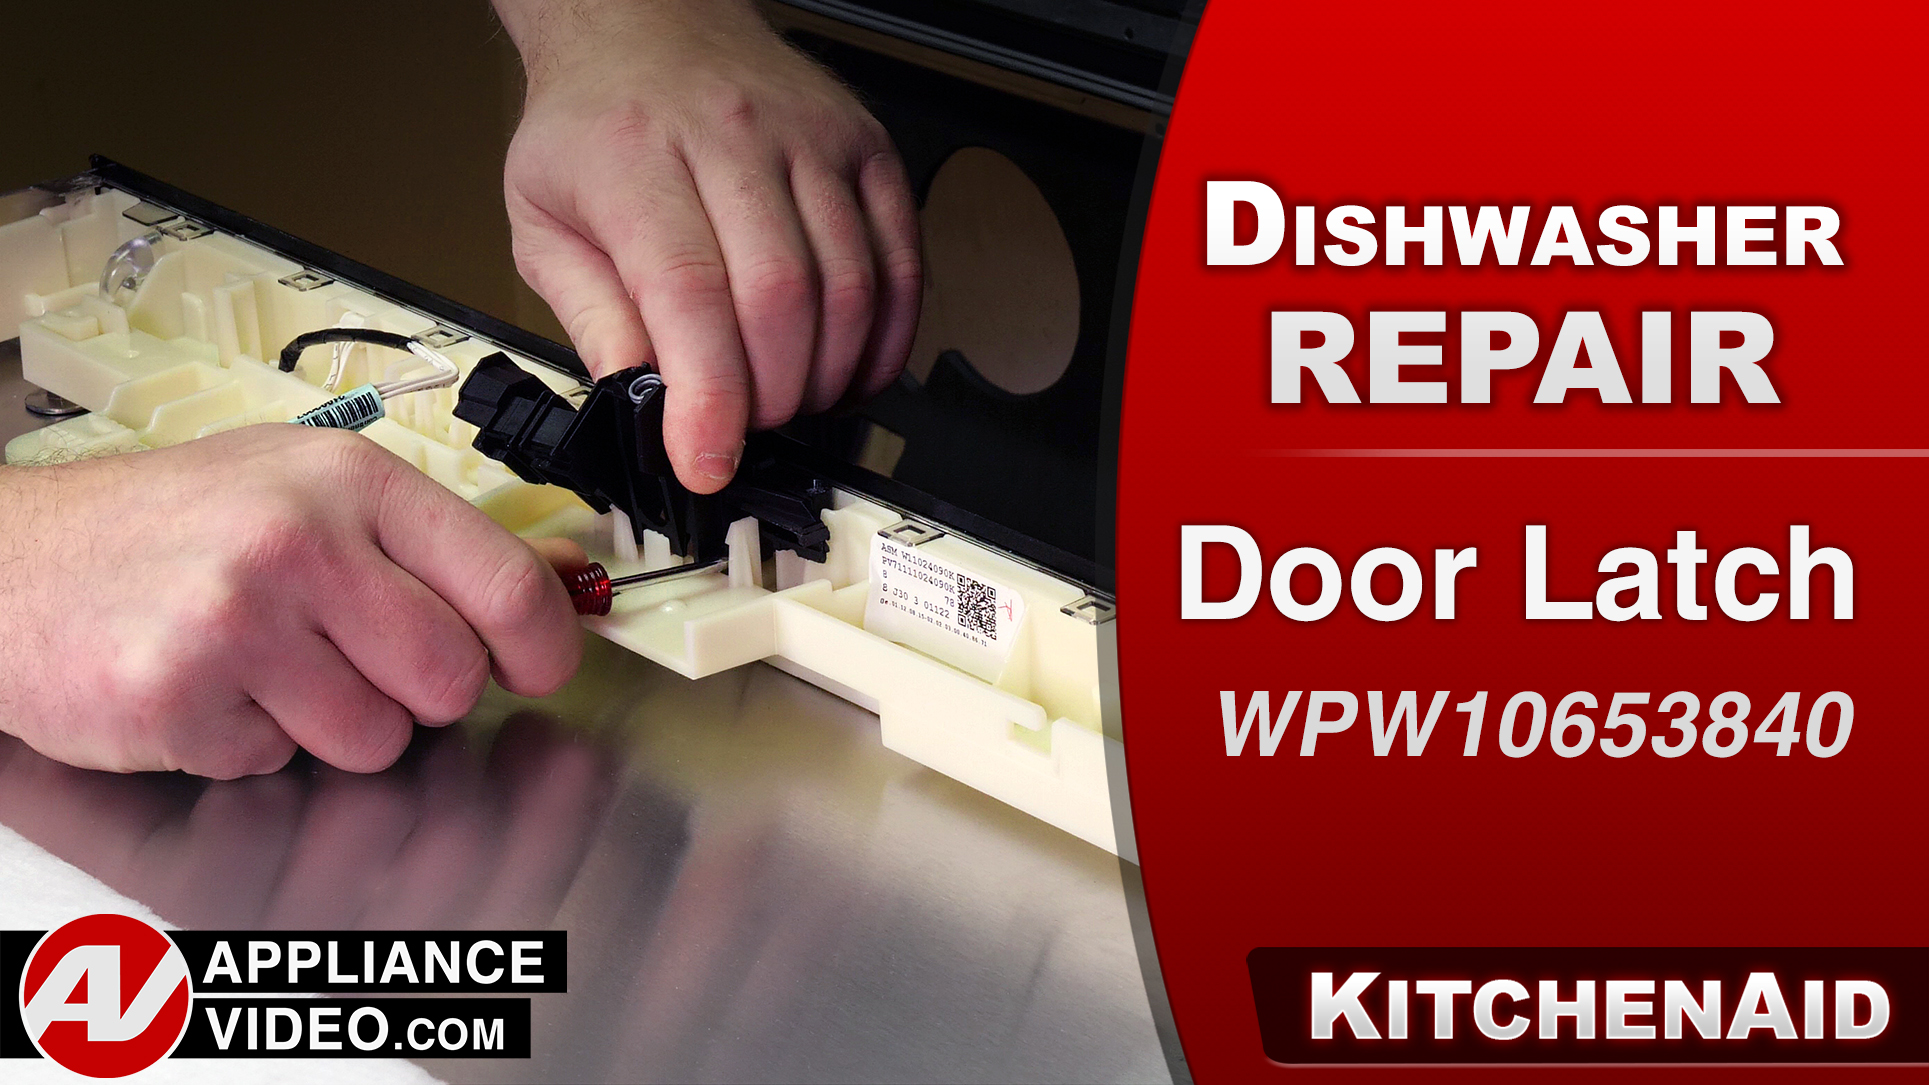 KitchenAid KDTM354ESS3 Dishwasher – Will not be able to open door – Door Latch